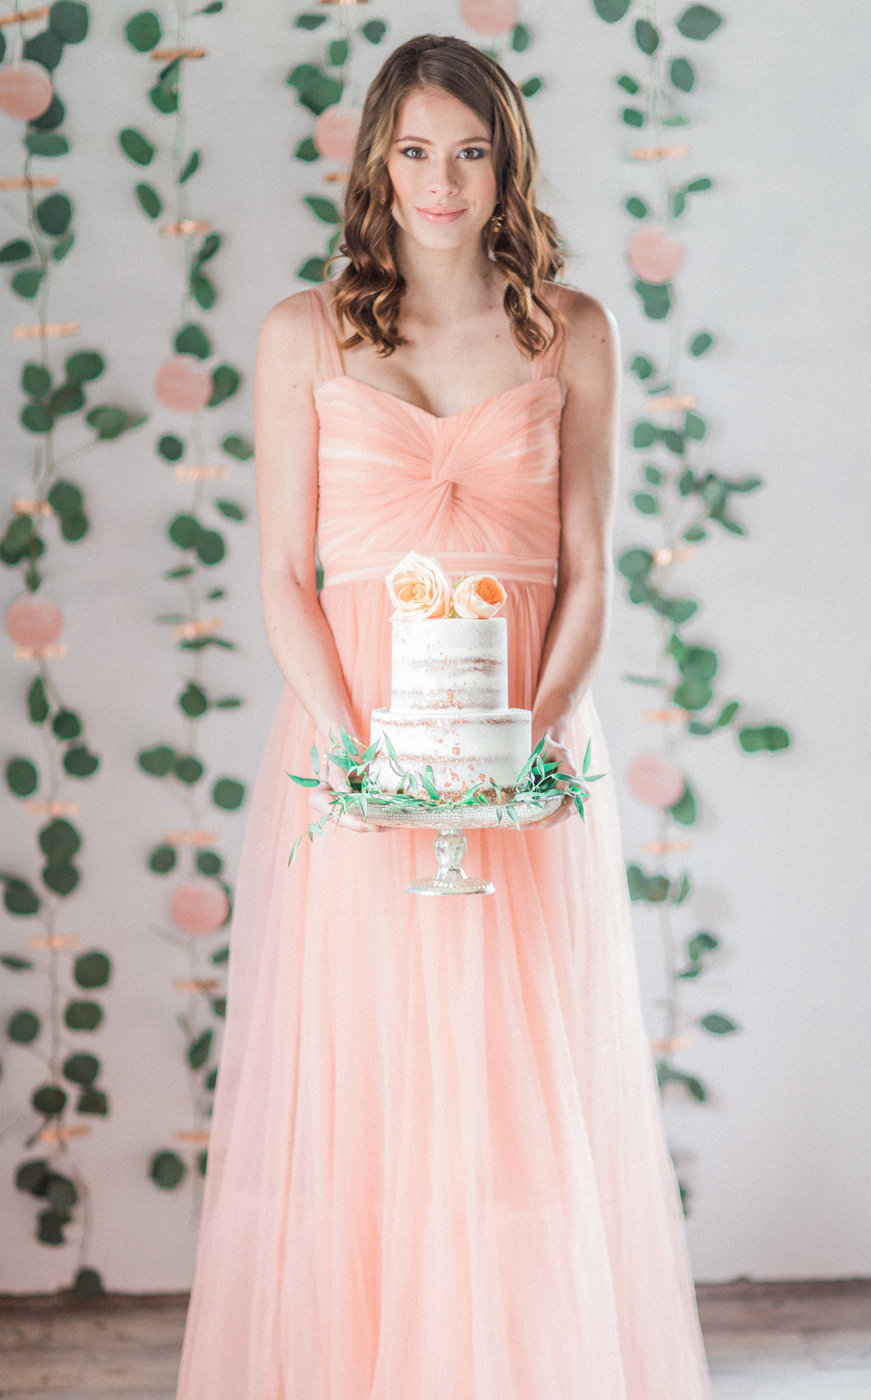 Peach Styled Shoot Editorial-Peach Styled Shoot Editorial-0080 (1)